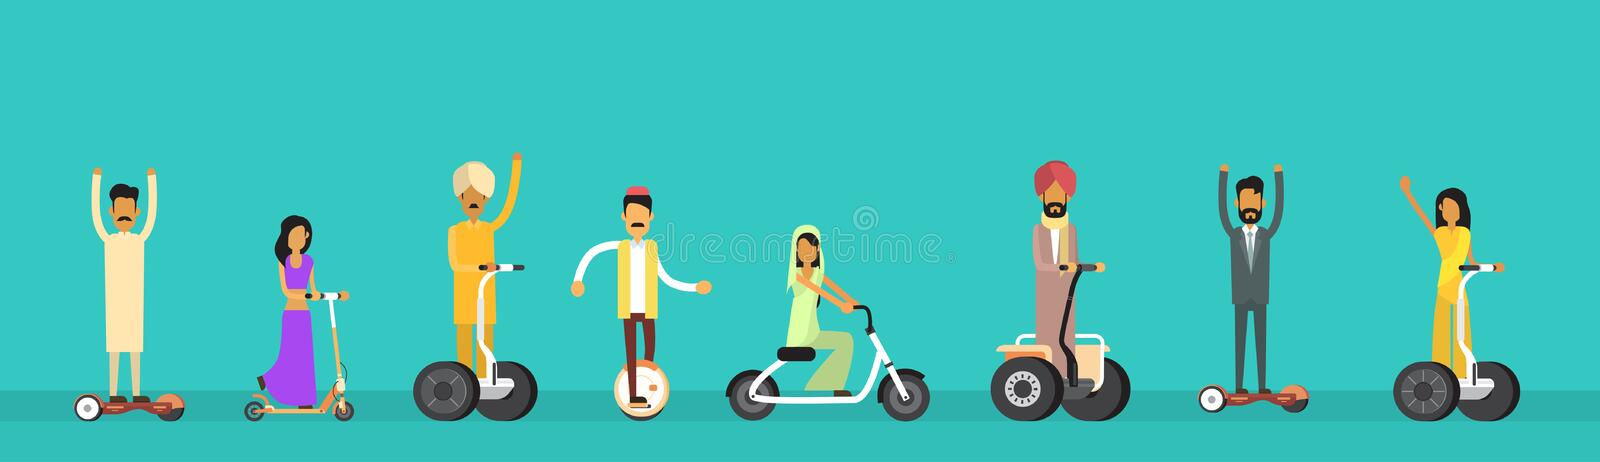 Arab People Group Arabic Man Woman Ride Electric Hover Board stock illustration